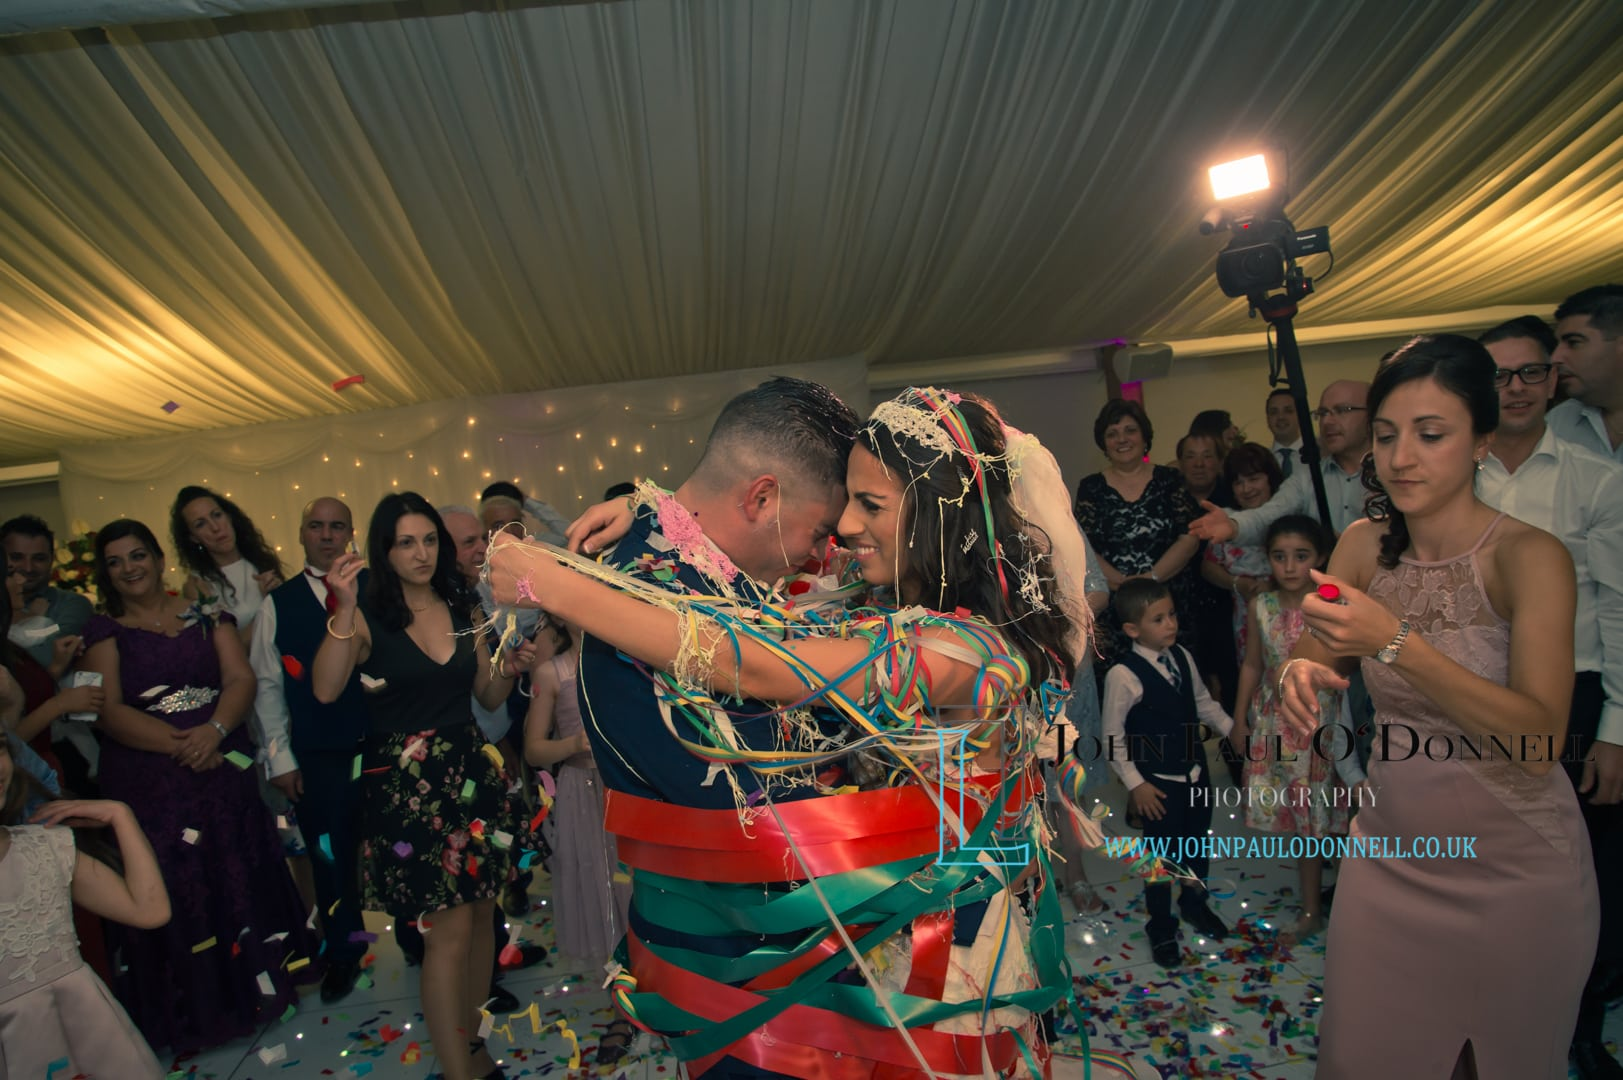 Sam and Christinas wedding at tewinbury farm